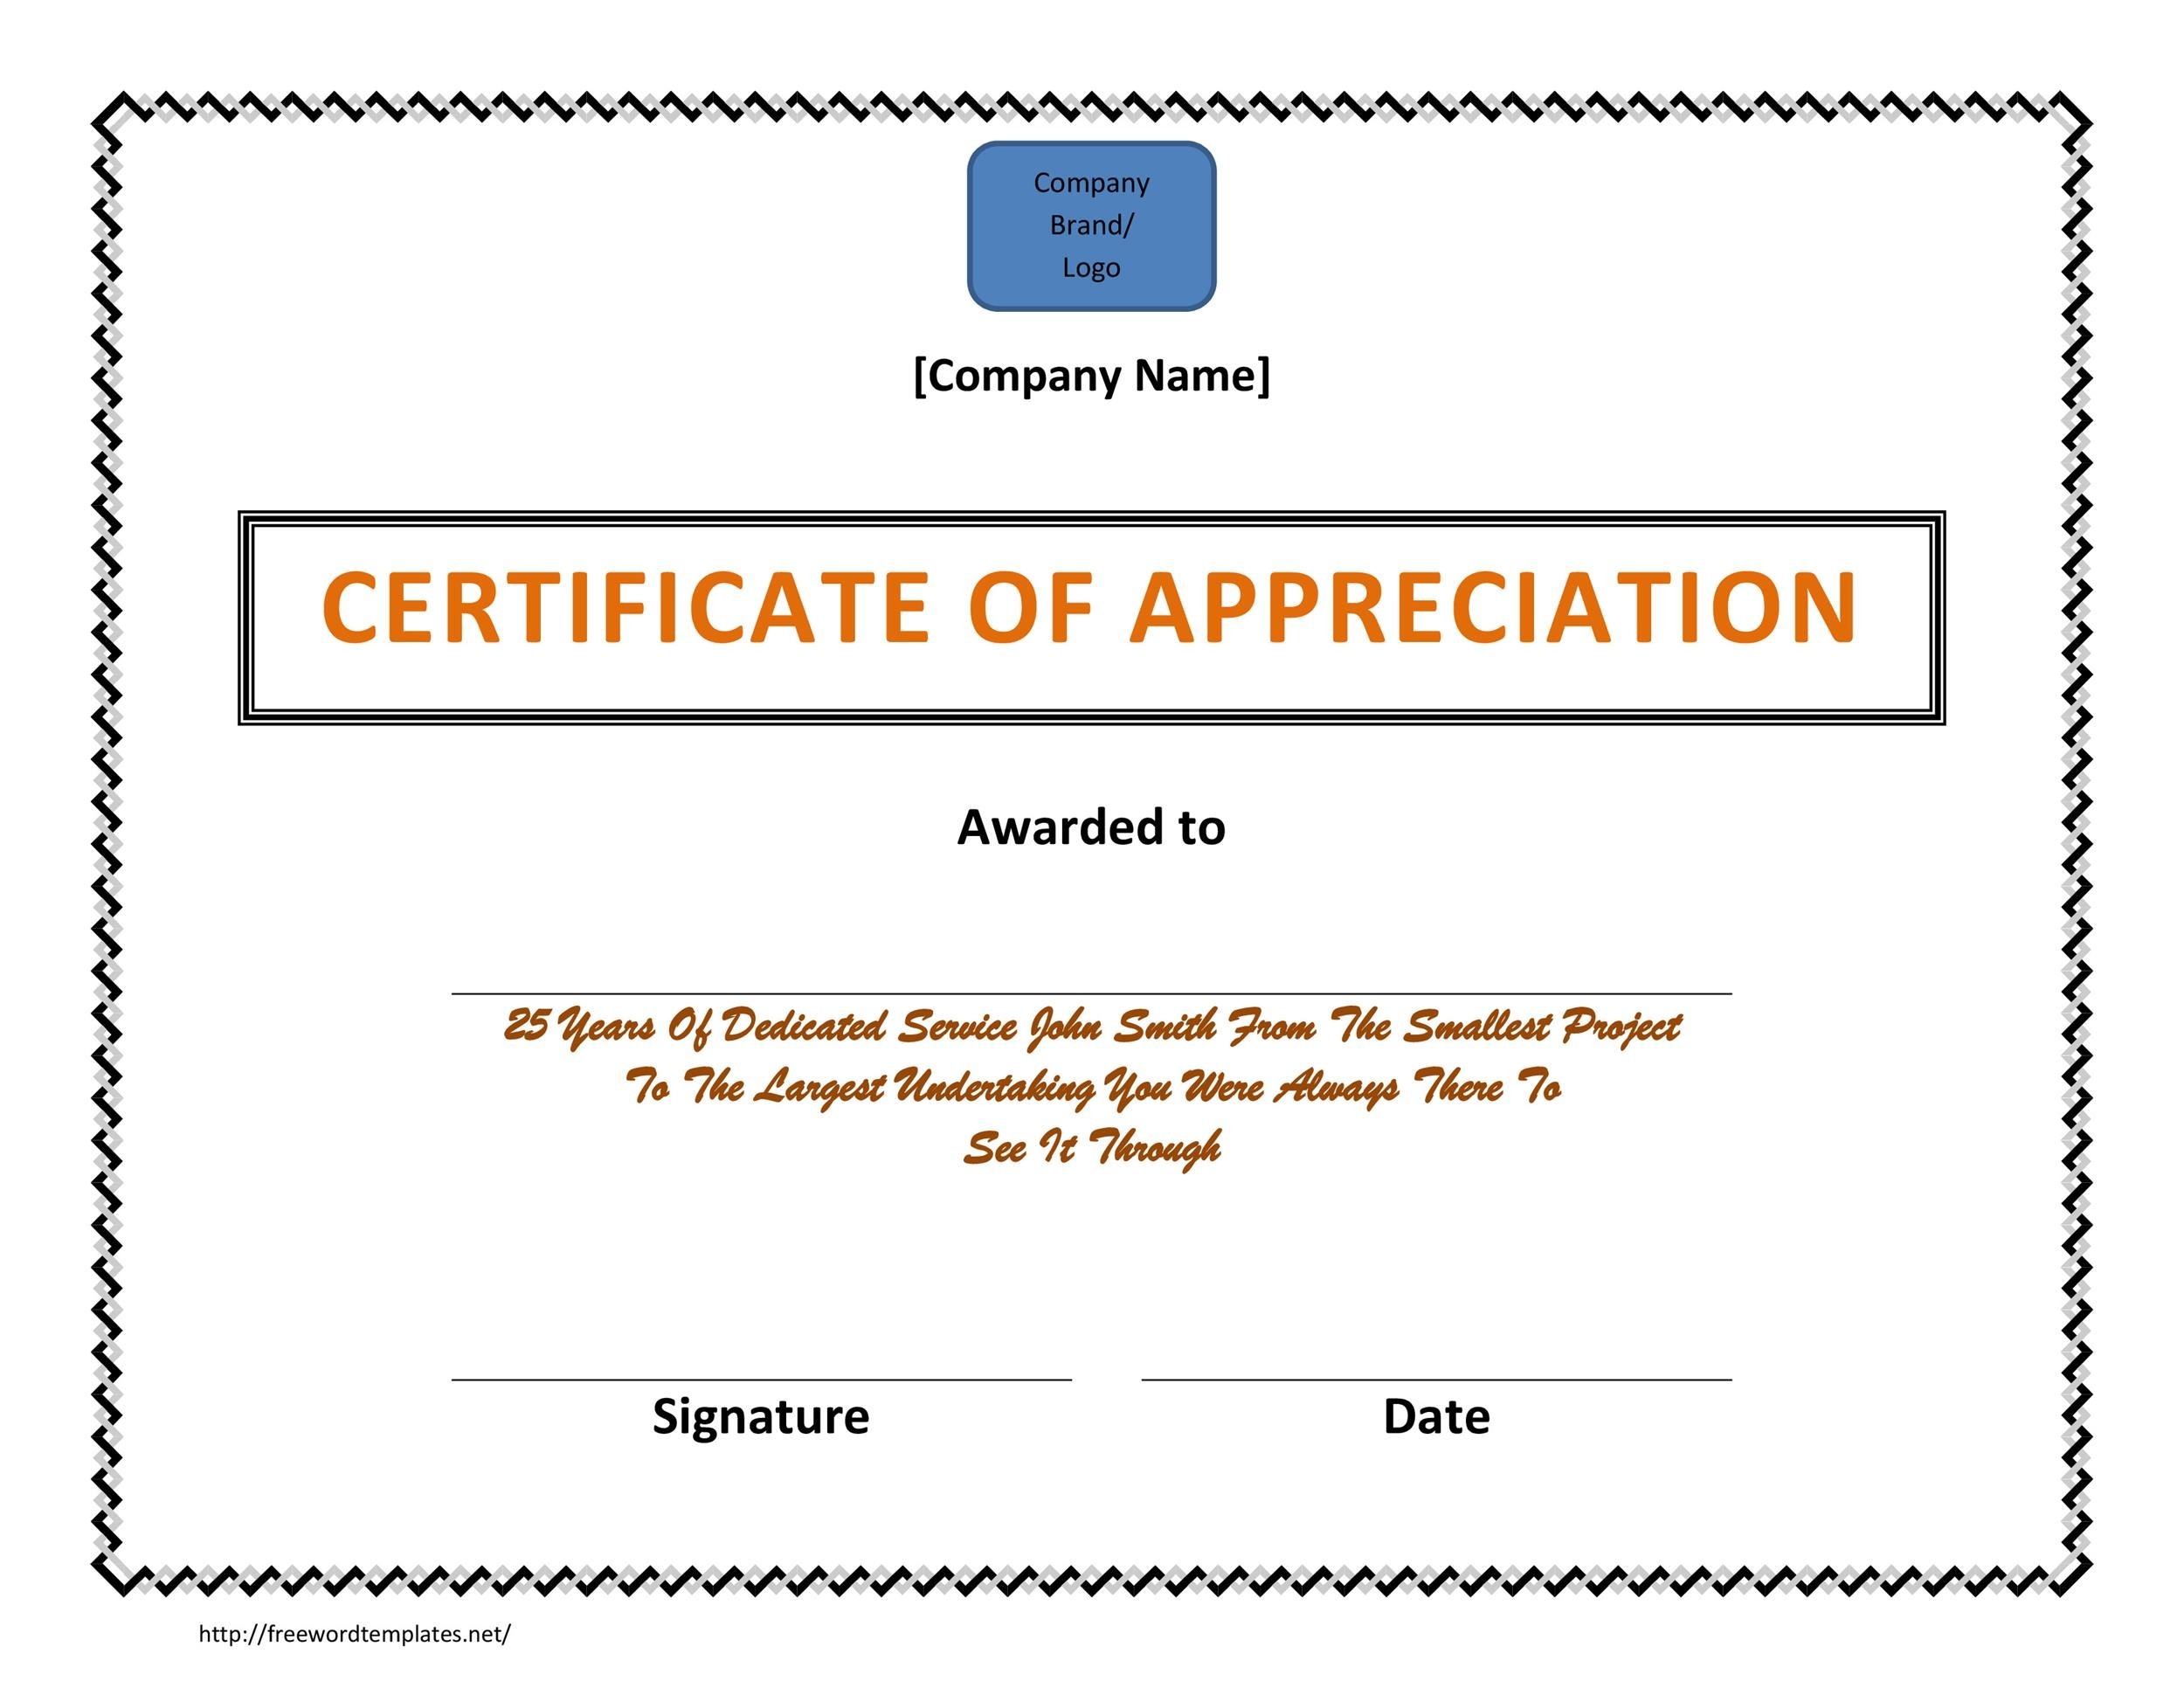 Printable Certificate Of Appreciation 05  Certificate Of Appreciation Word Template